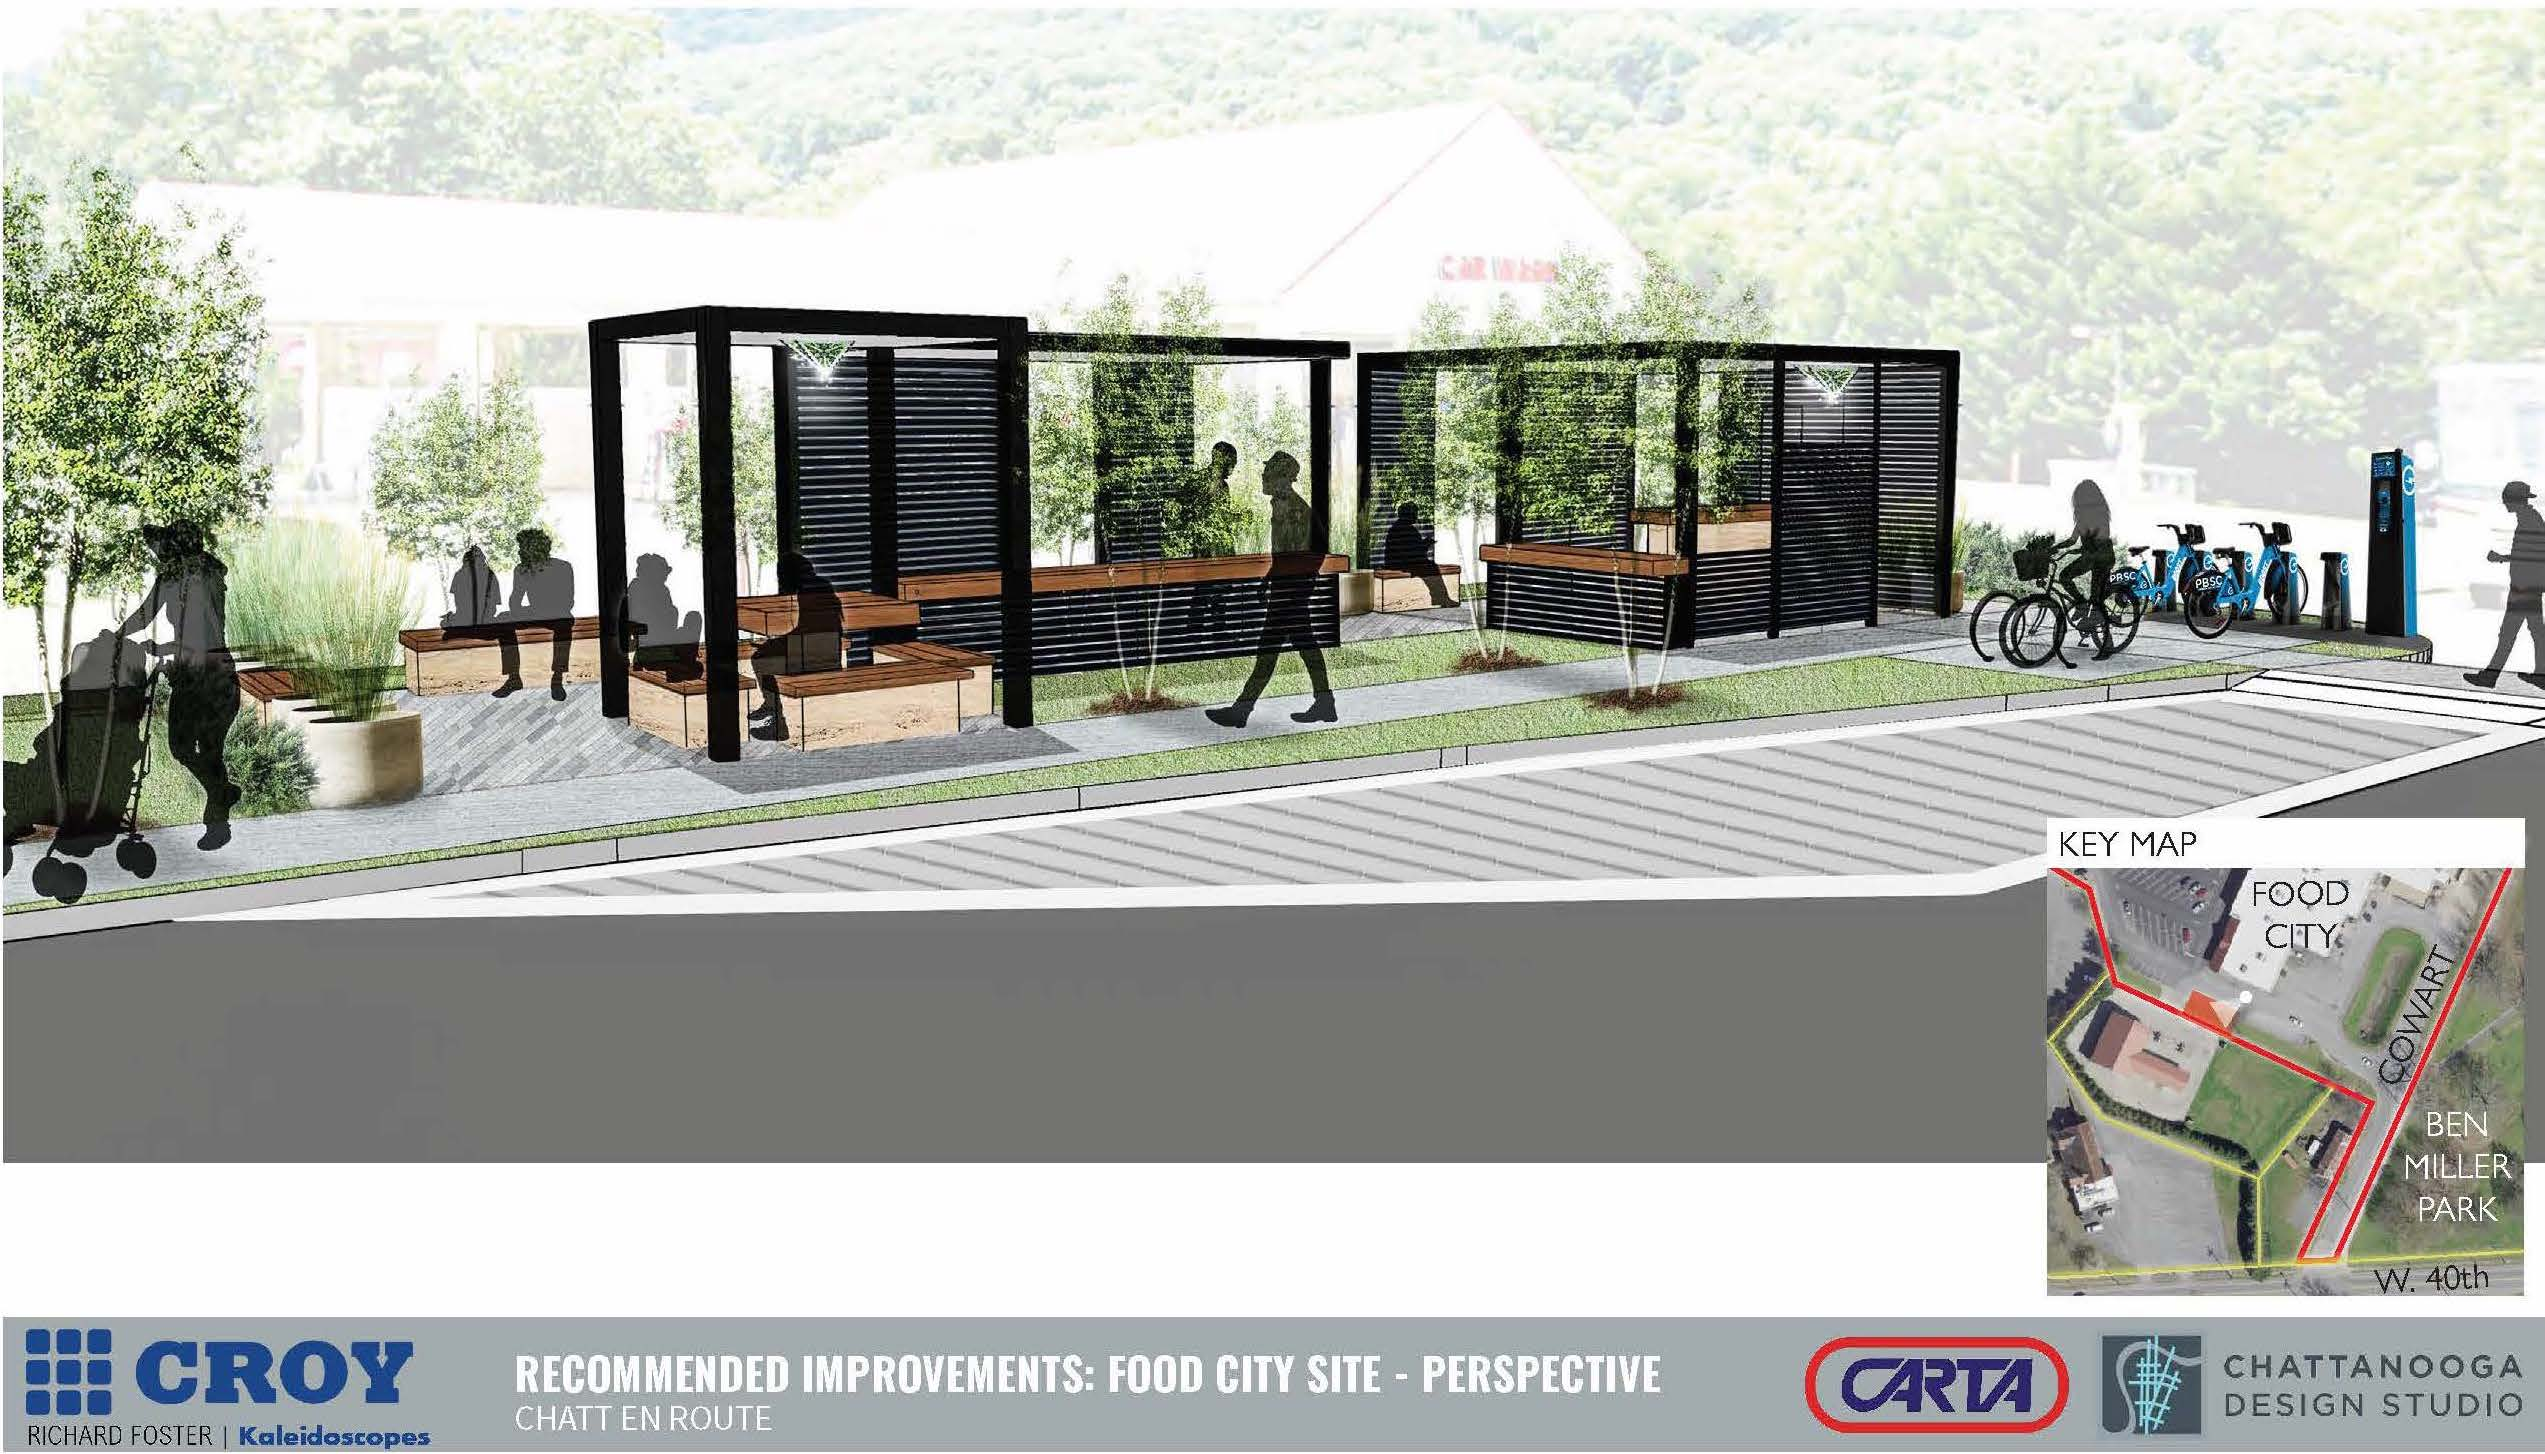 Rendering of a bus stop by Food City showing the stop's wooden seating, vegetation, and boxy design.